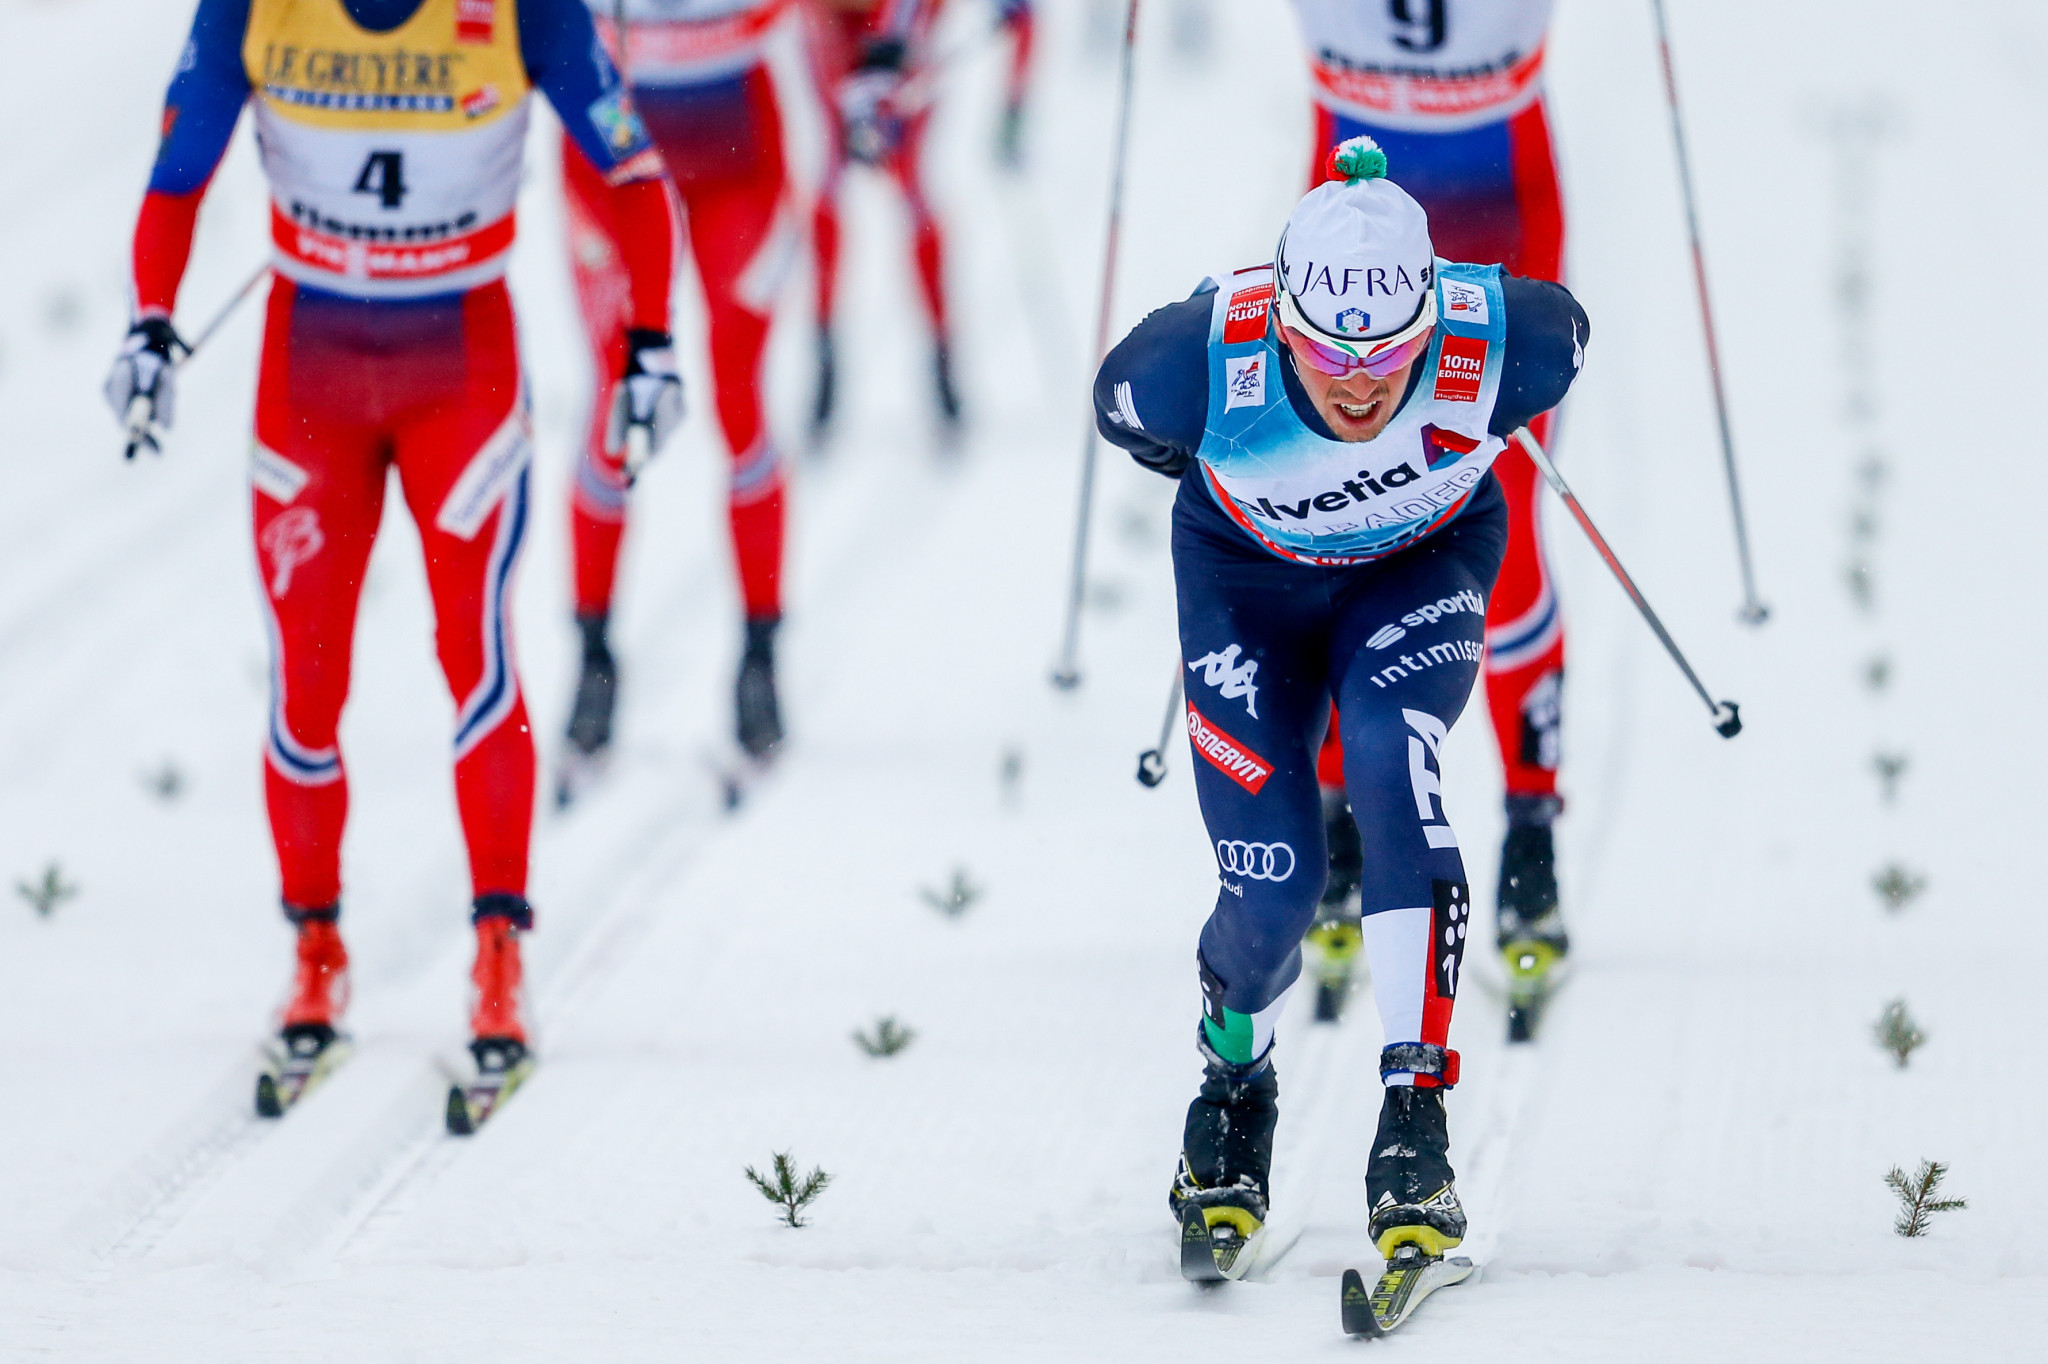 Italy make two key cross-country skiing appointments